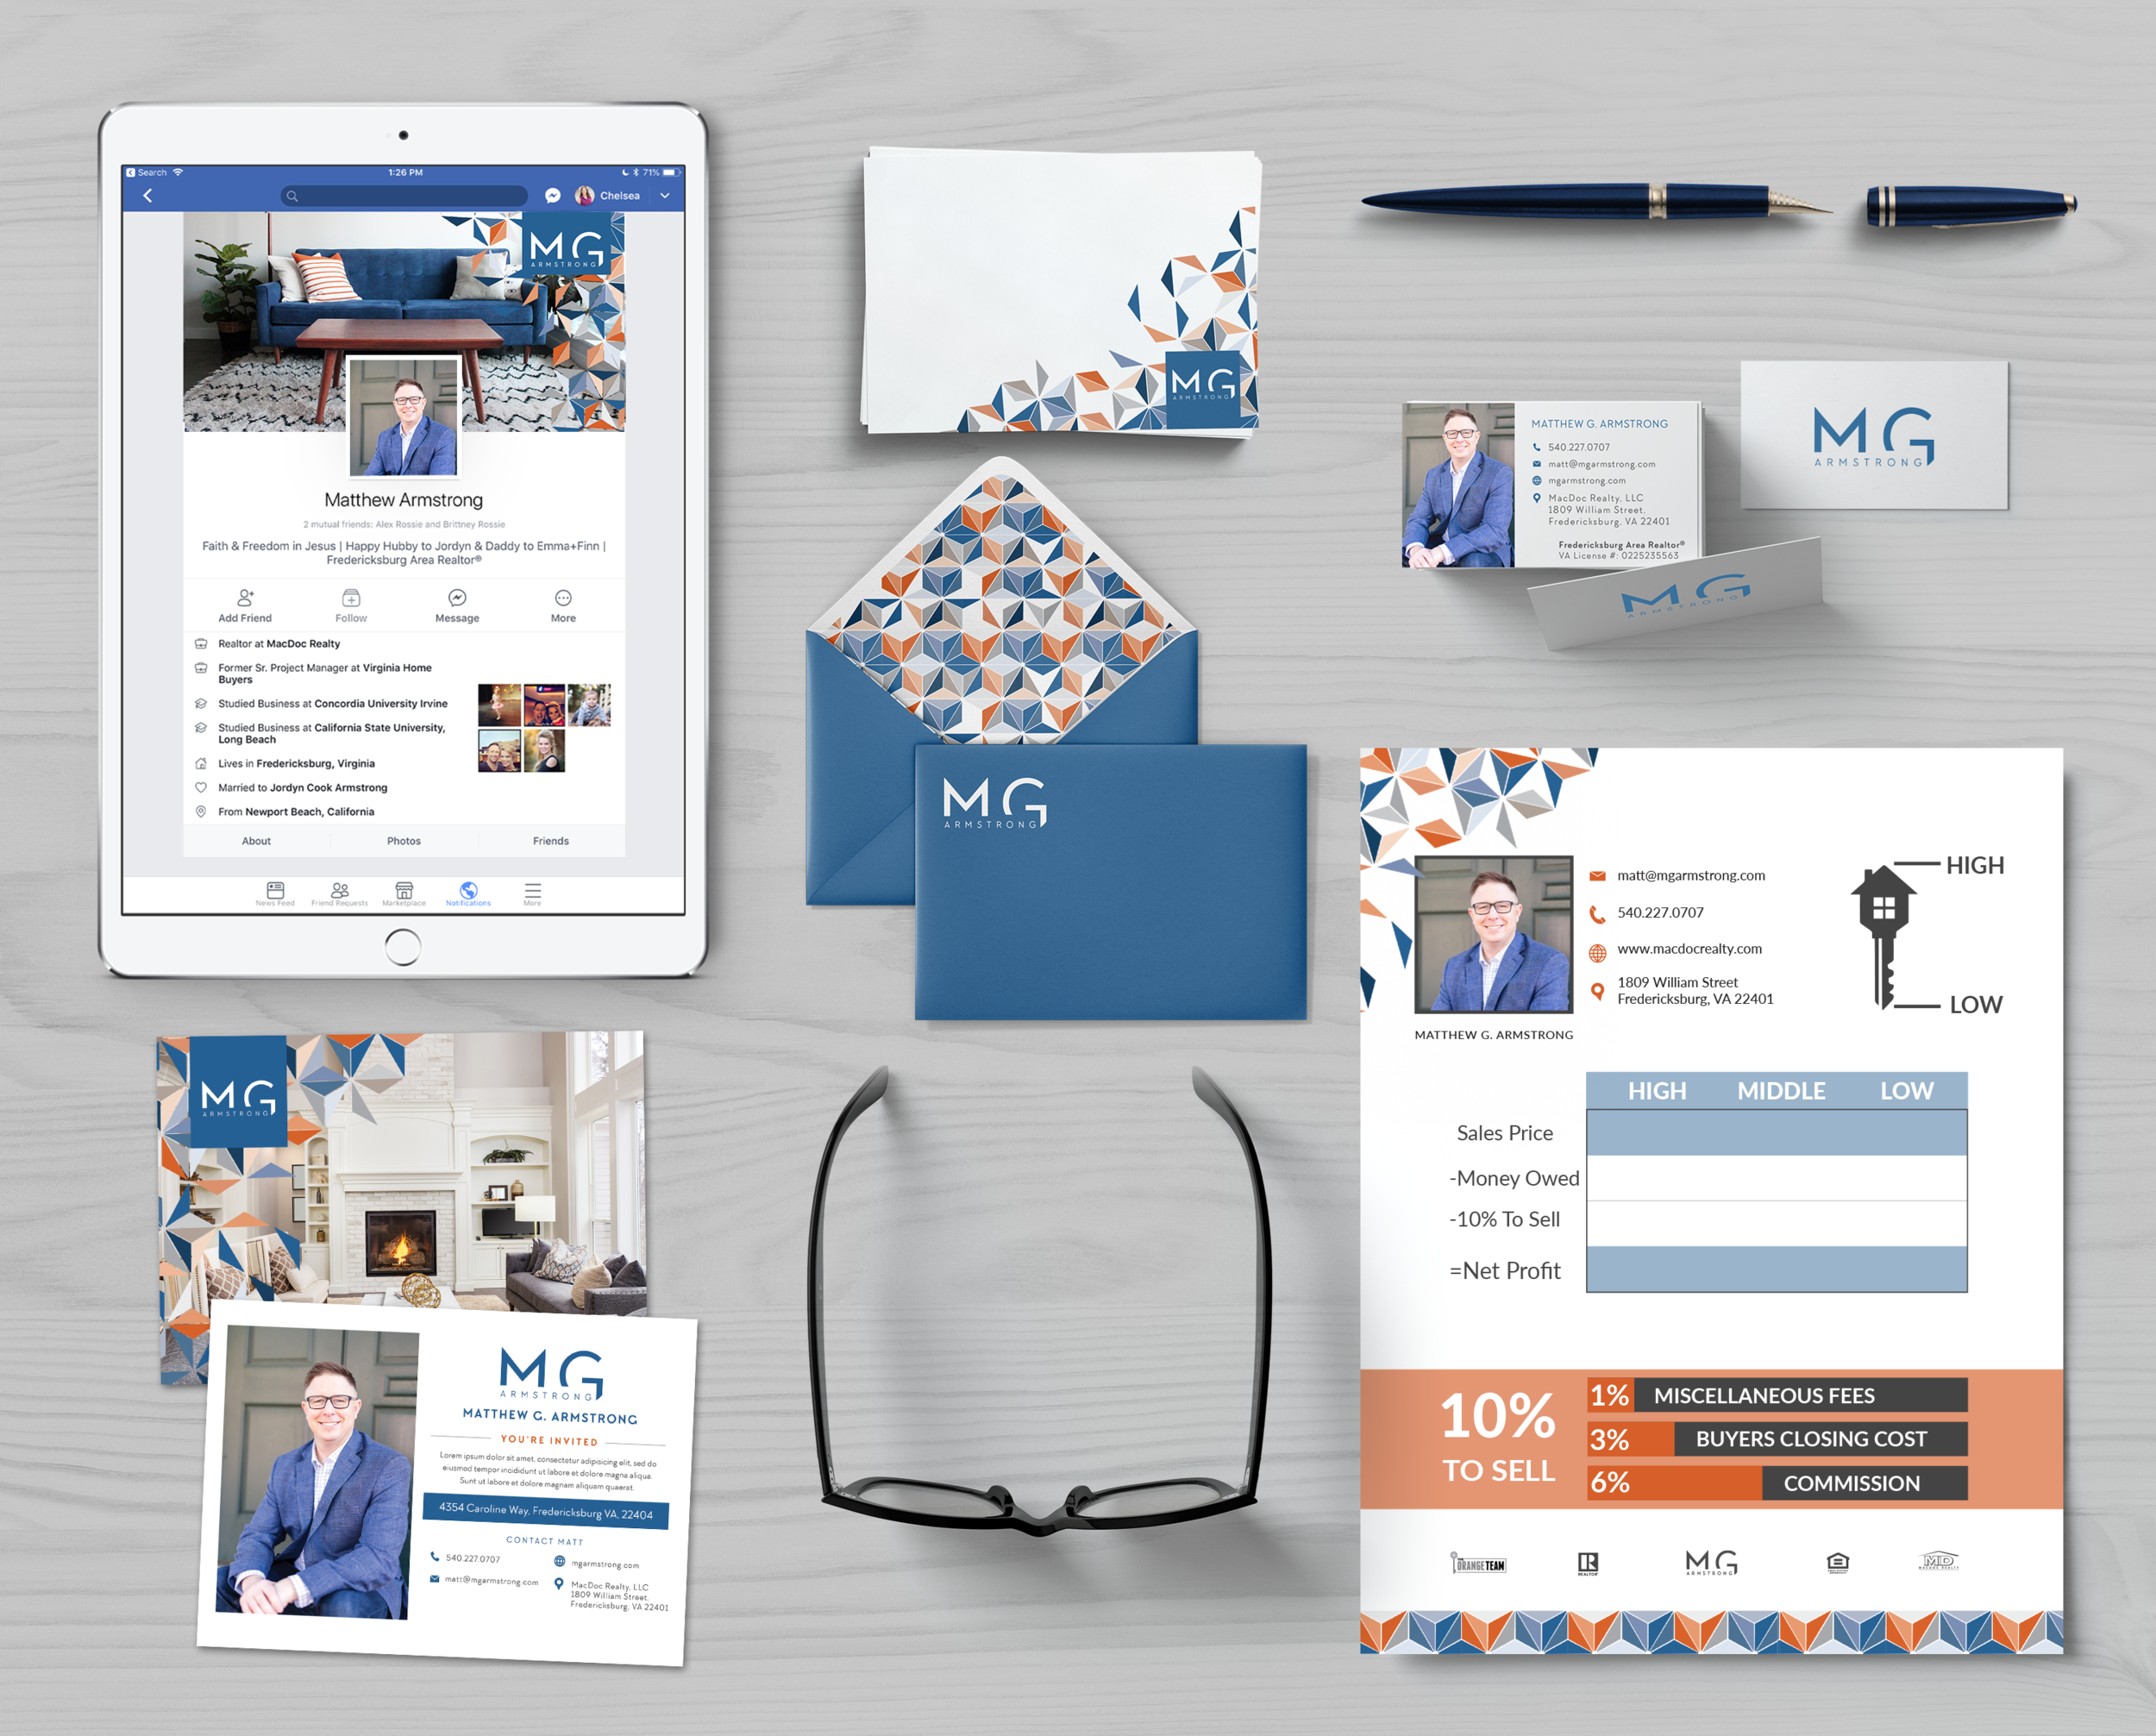 MG_Armstrong_Branding_Identity_Mockup.png